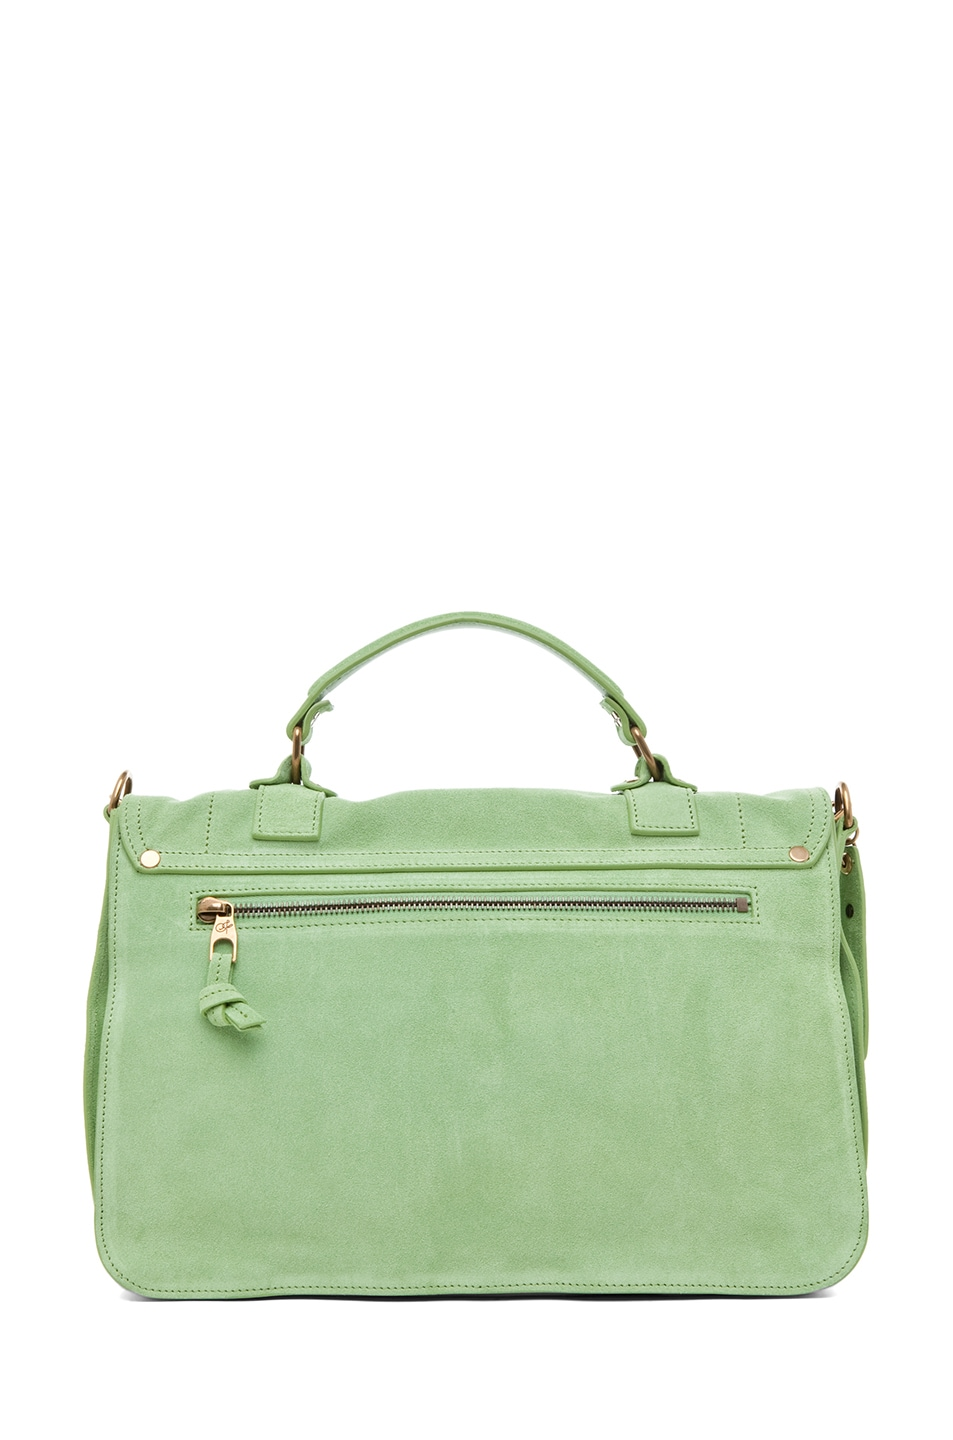 Image 2 of Proenza Schouler PS1 Medium Suede in Jade